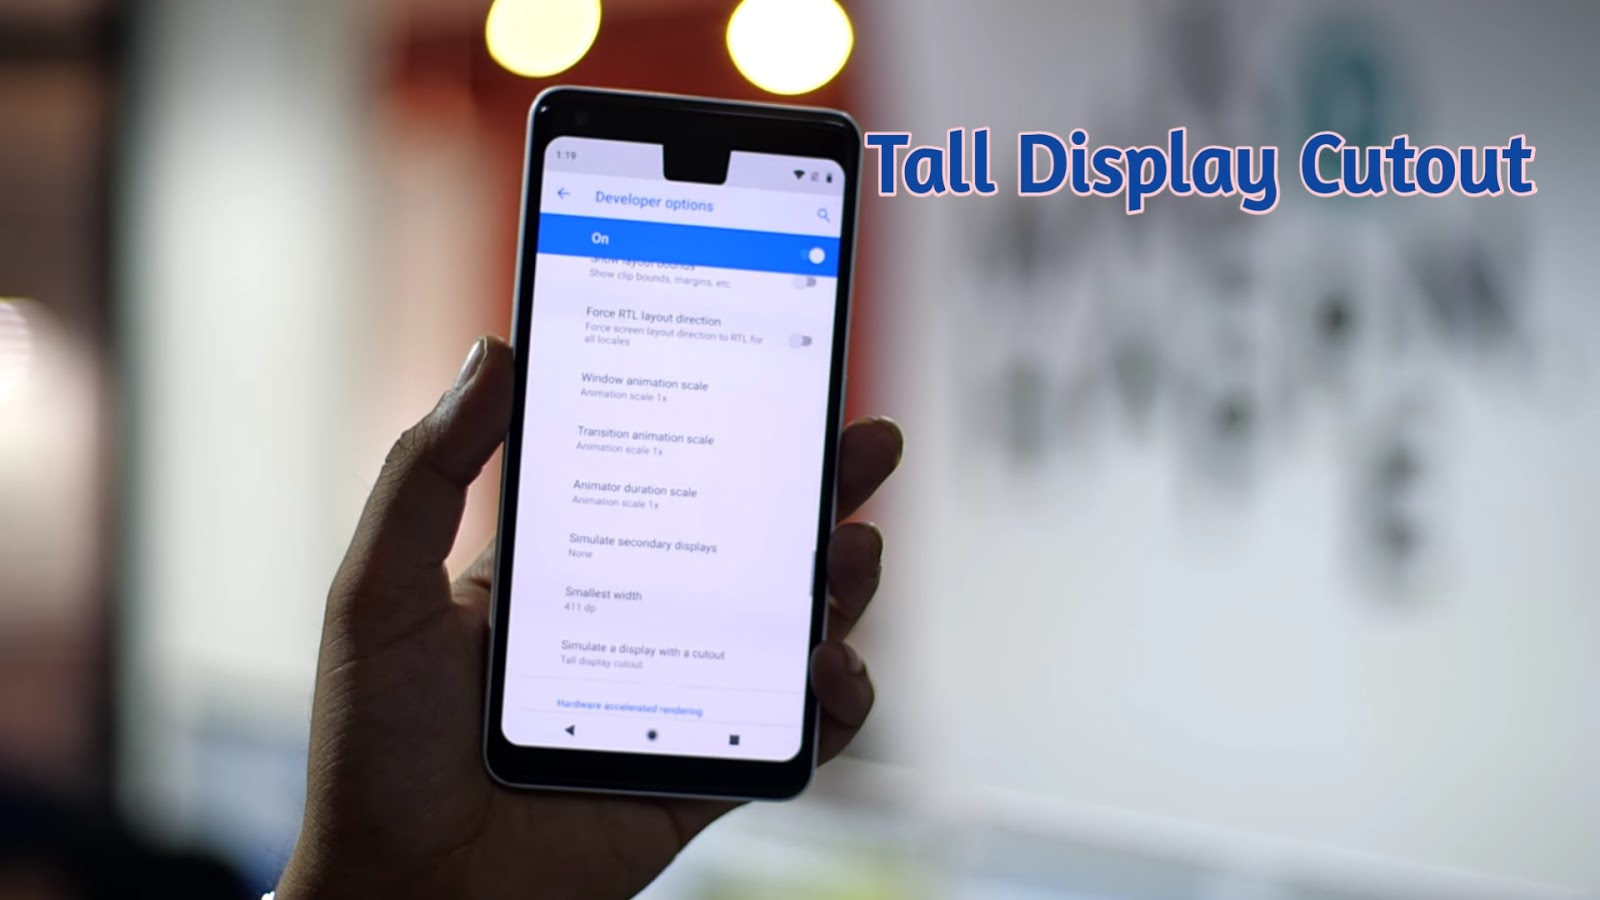 The tall display cutout